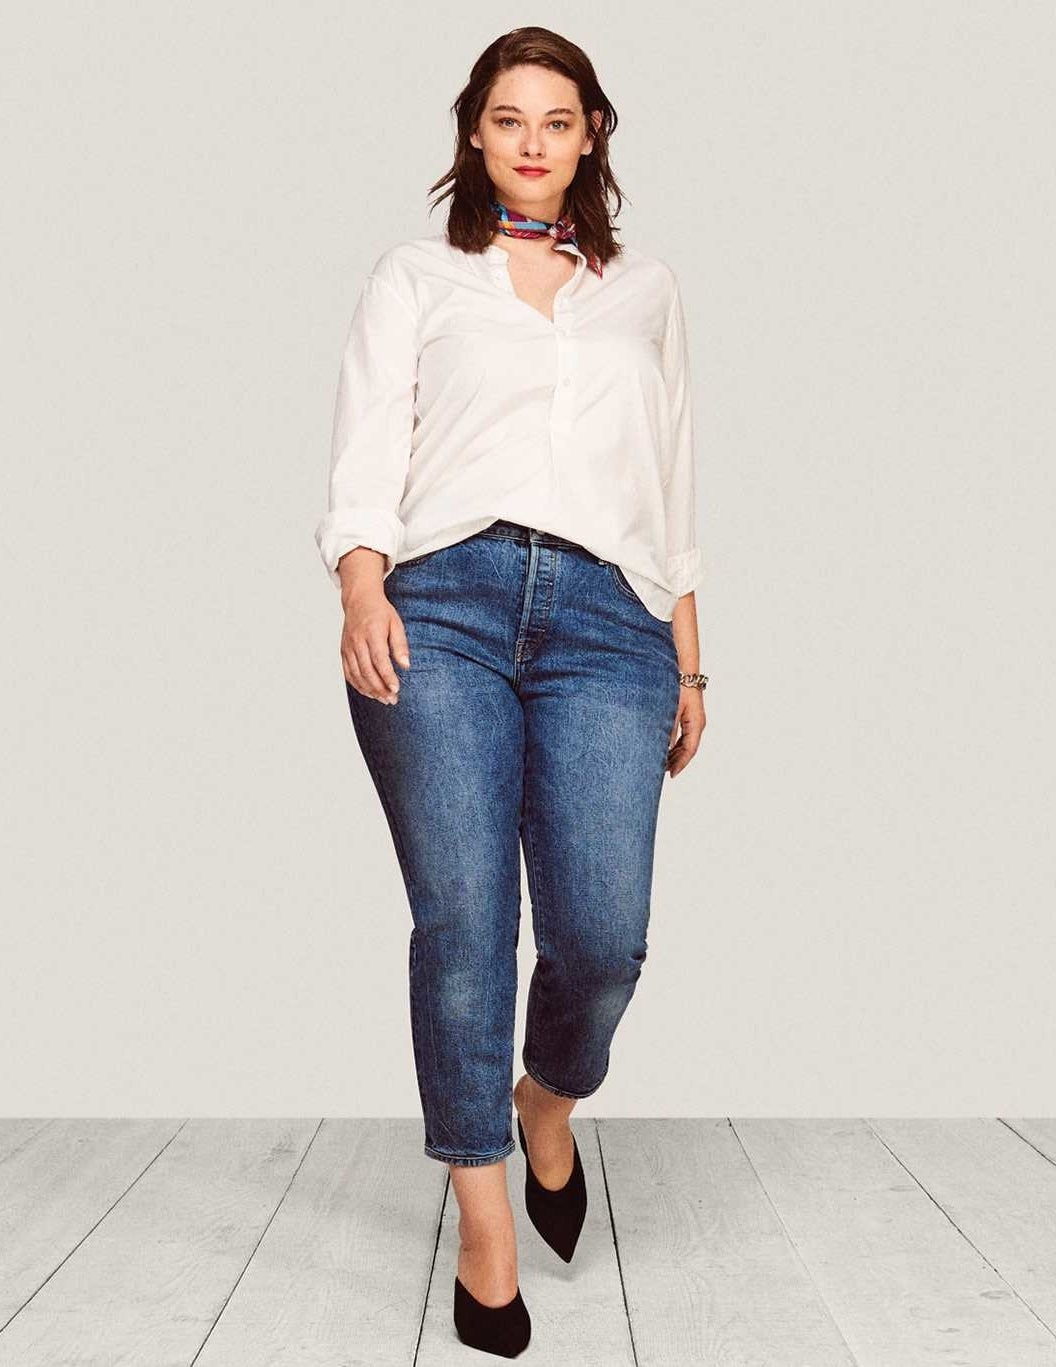 These jeans have a touch of stretch to 'em, but are made from an innovative denim that has amazing retention. This means that these bad boys won't lose their shape after only a couple of wears. Get them from Warp + Weft for $98 (plus get 15% off your first order). Sizes: 14-24. Available in three colors.